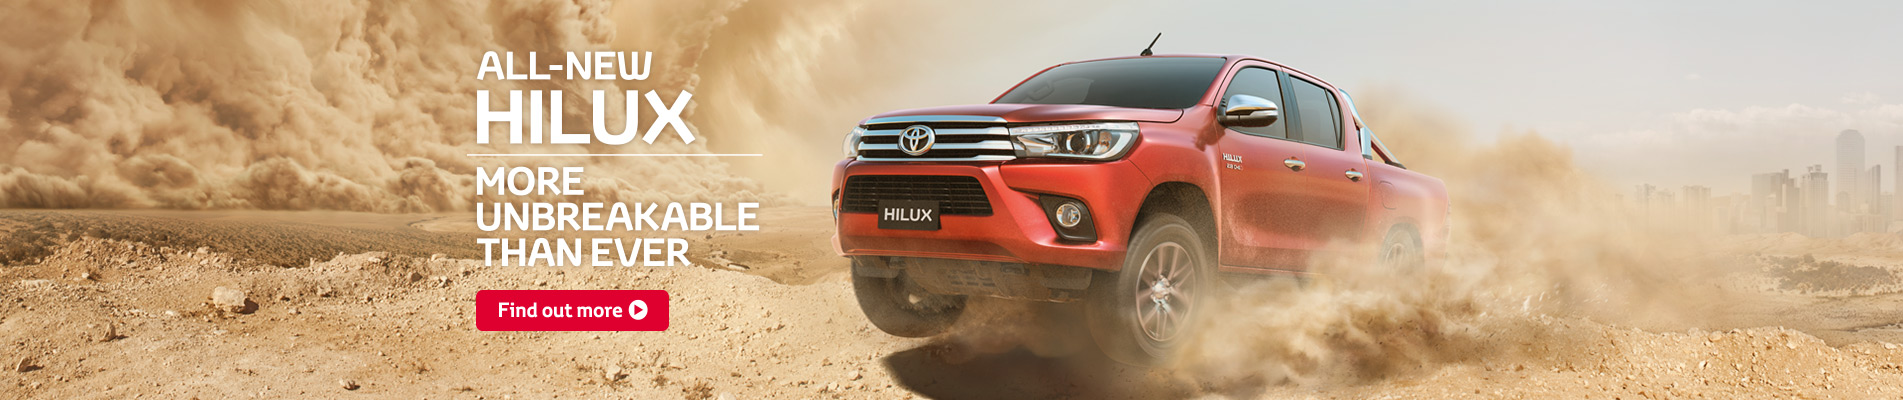 all-new-hilux-banner-30sept2015